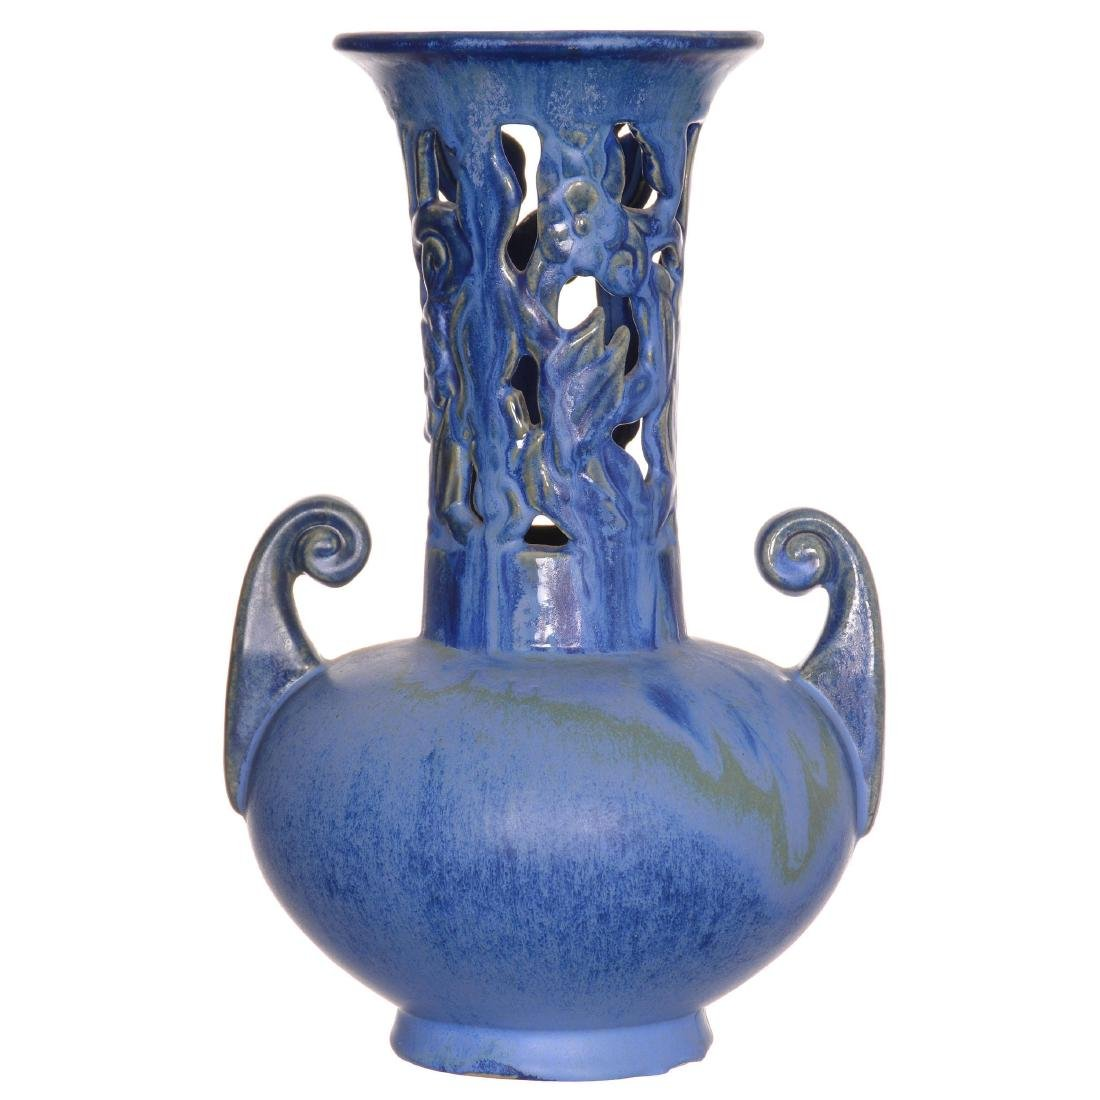 Fulper Art Pottery Vase